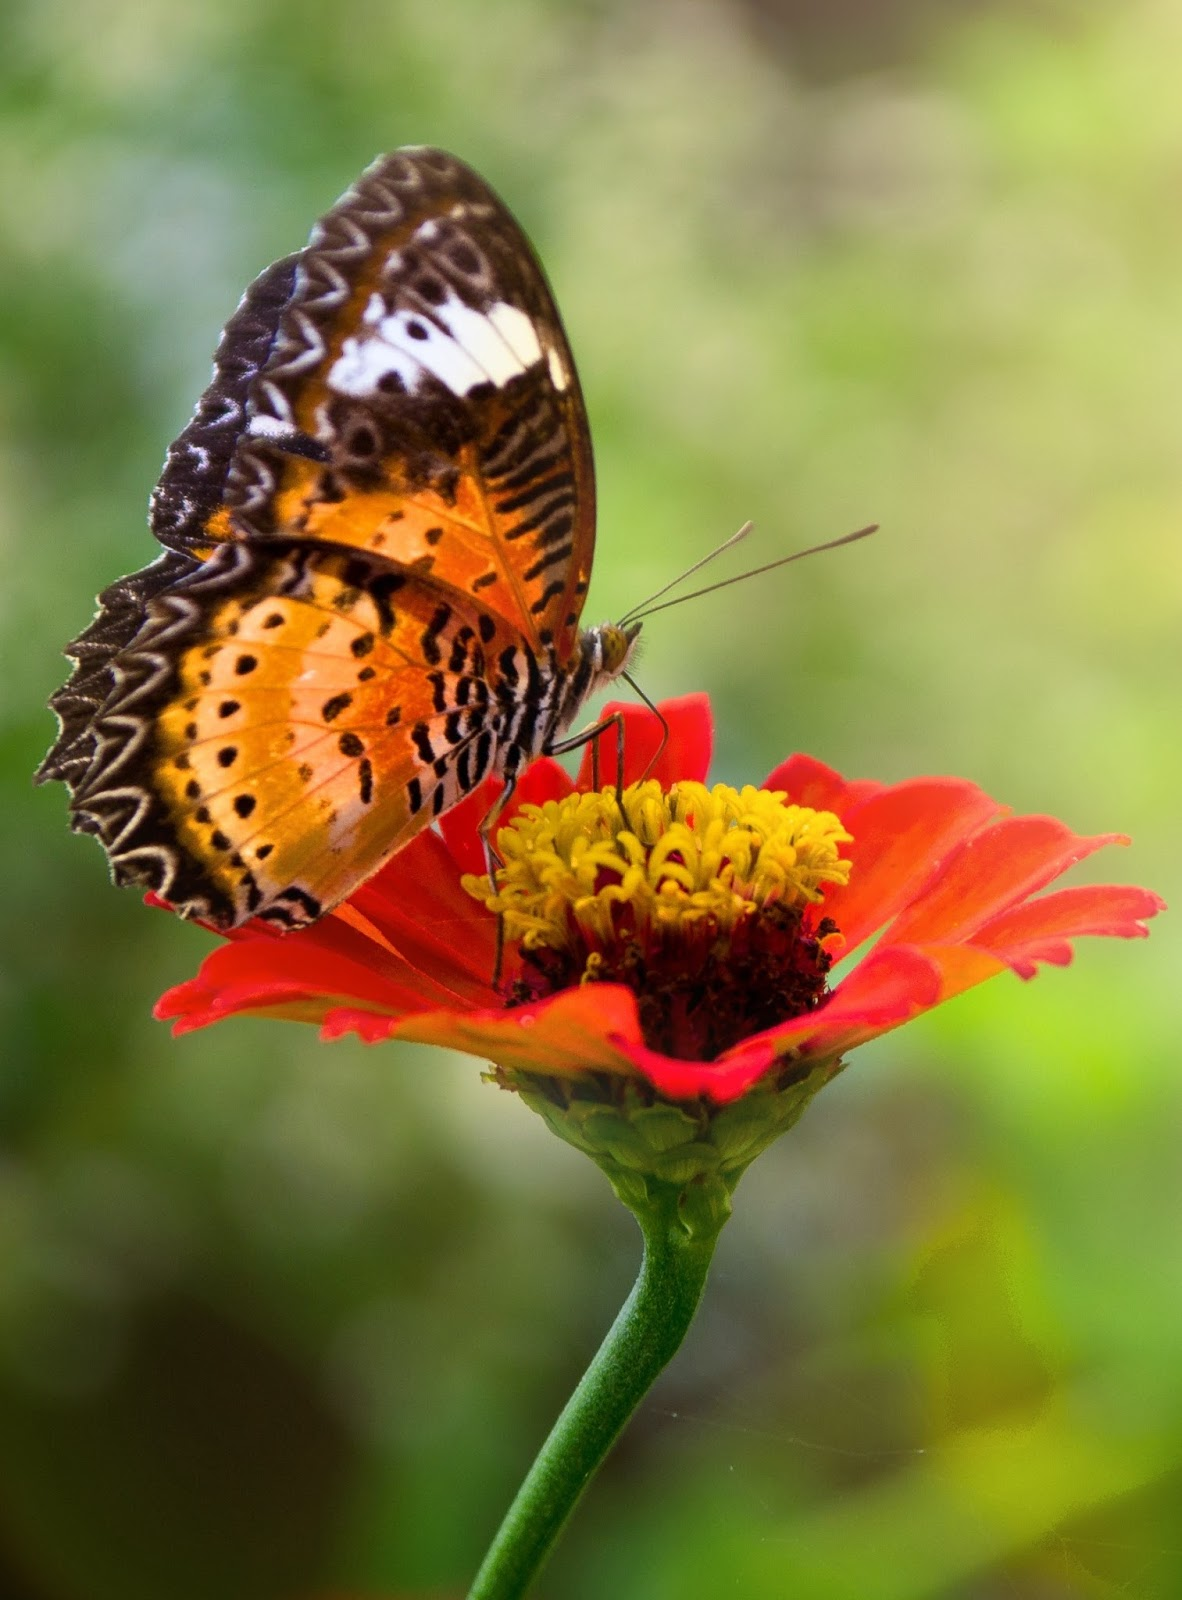 A beautiful tiger butterfly sucking nectar on a red yellow flower.